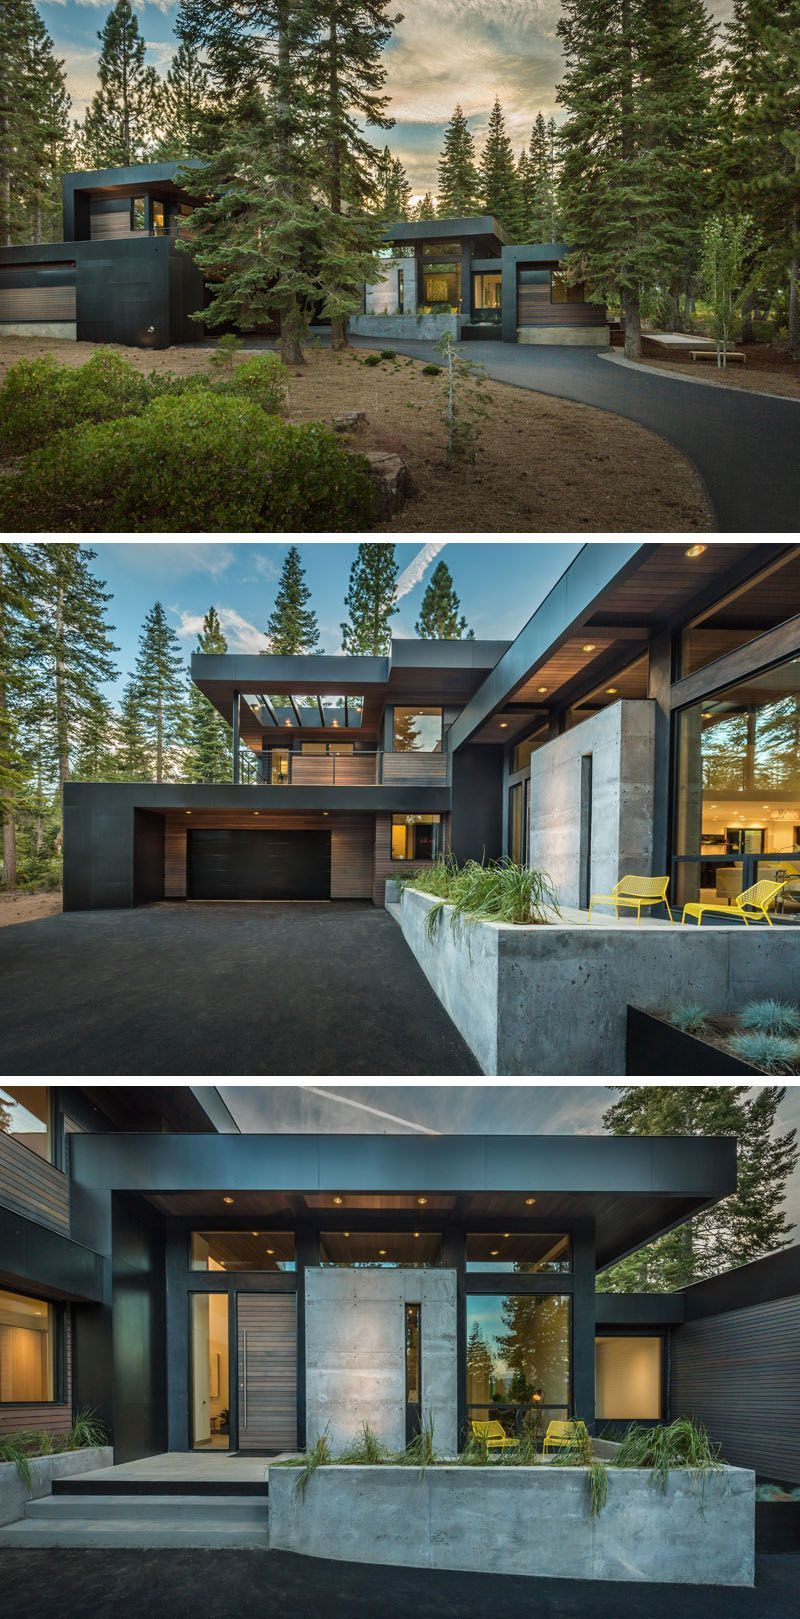 This home designed as a secluded and